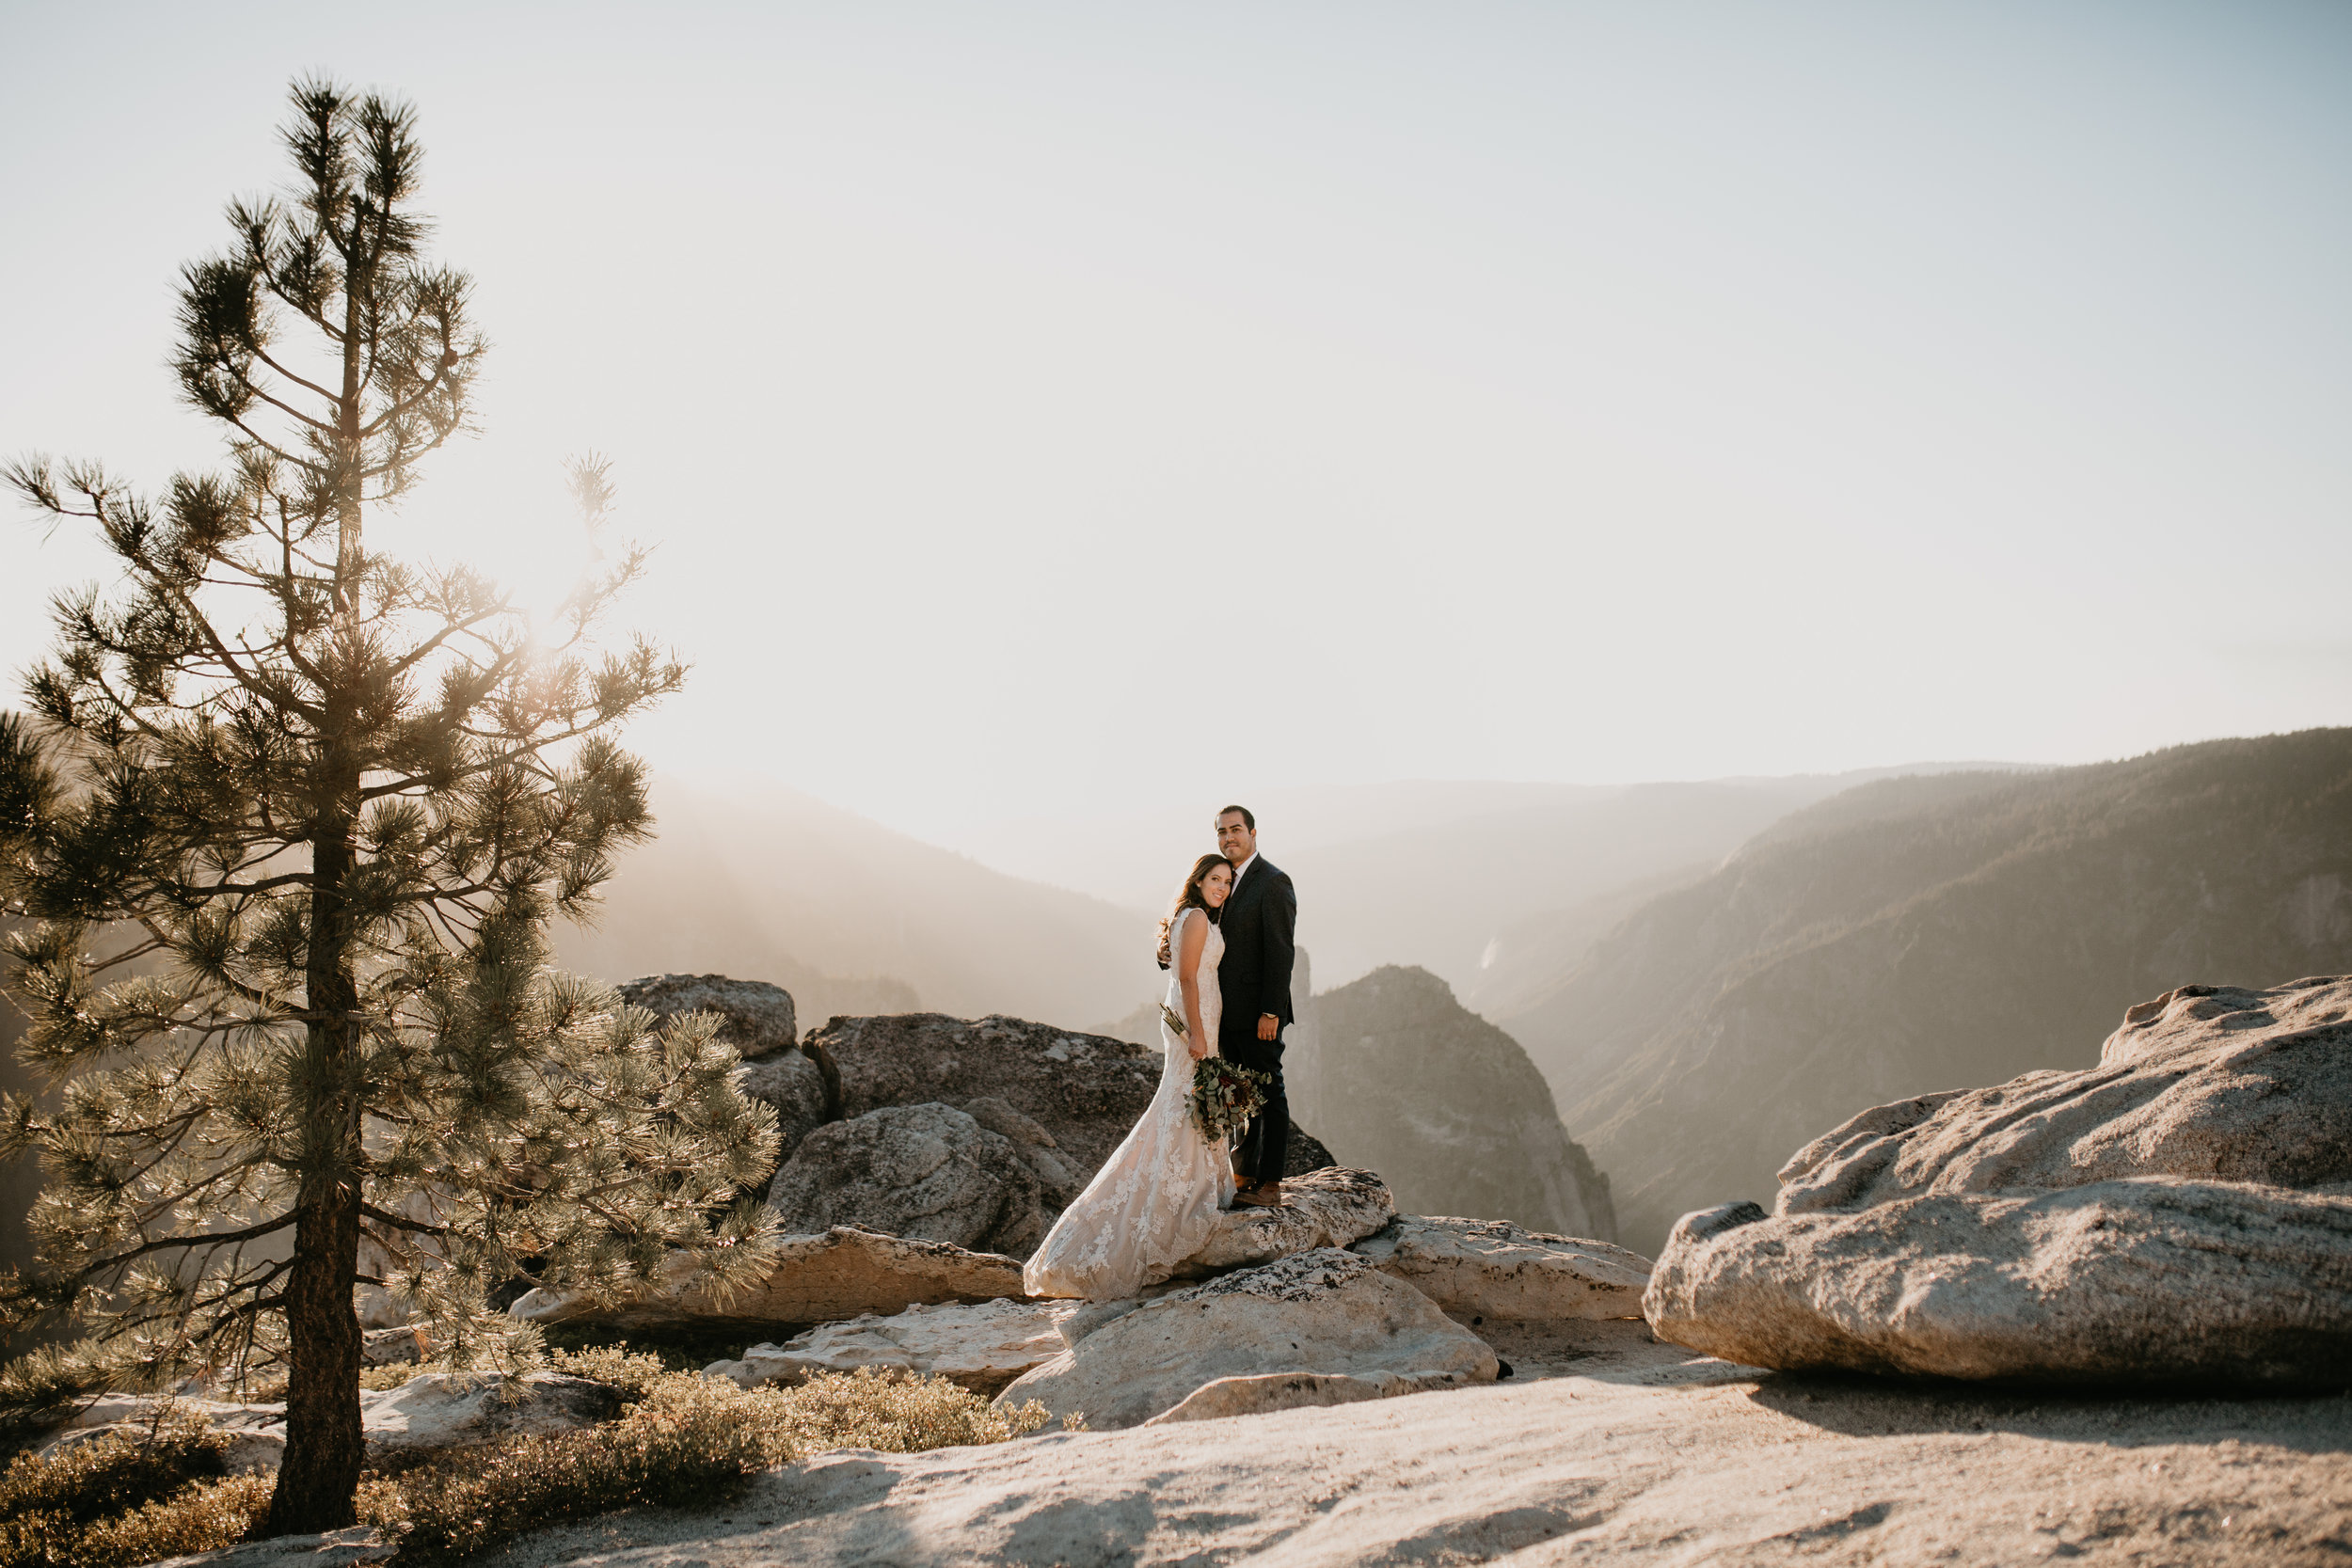 nicole-daacke-photography-intimate-elopement-wedding-yosemite-national-park-california-taft-point-sunset-photos-yosemite-valley-tunnel-view-first-look-sunrise-golden-granite-hiking-adventure-wedding-adventurous-elopement-photographer-94.jpg